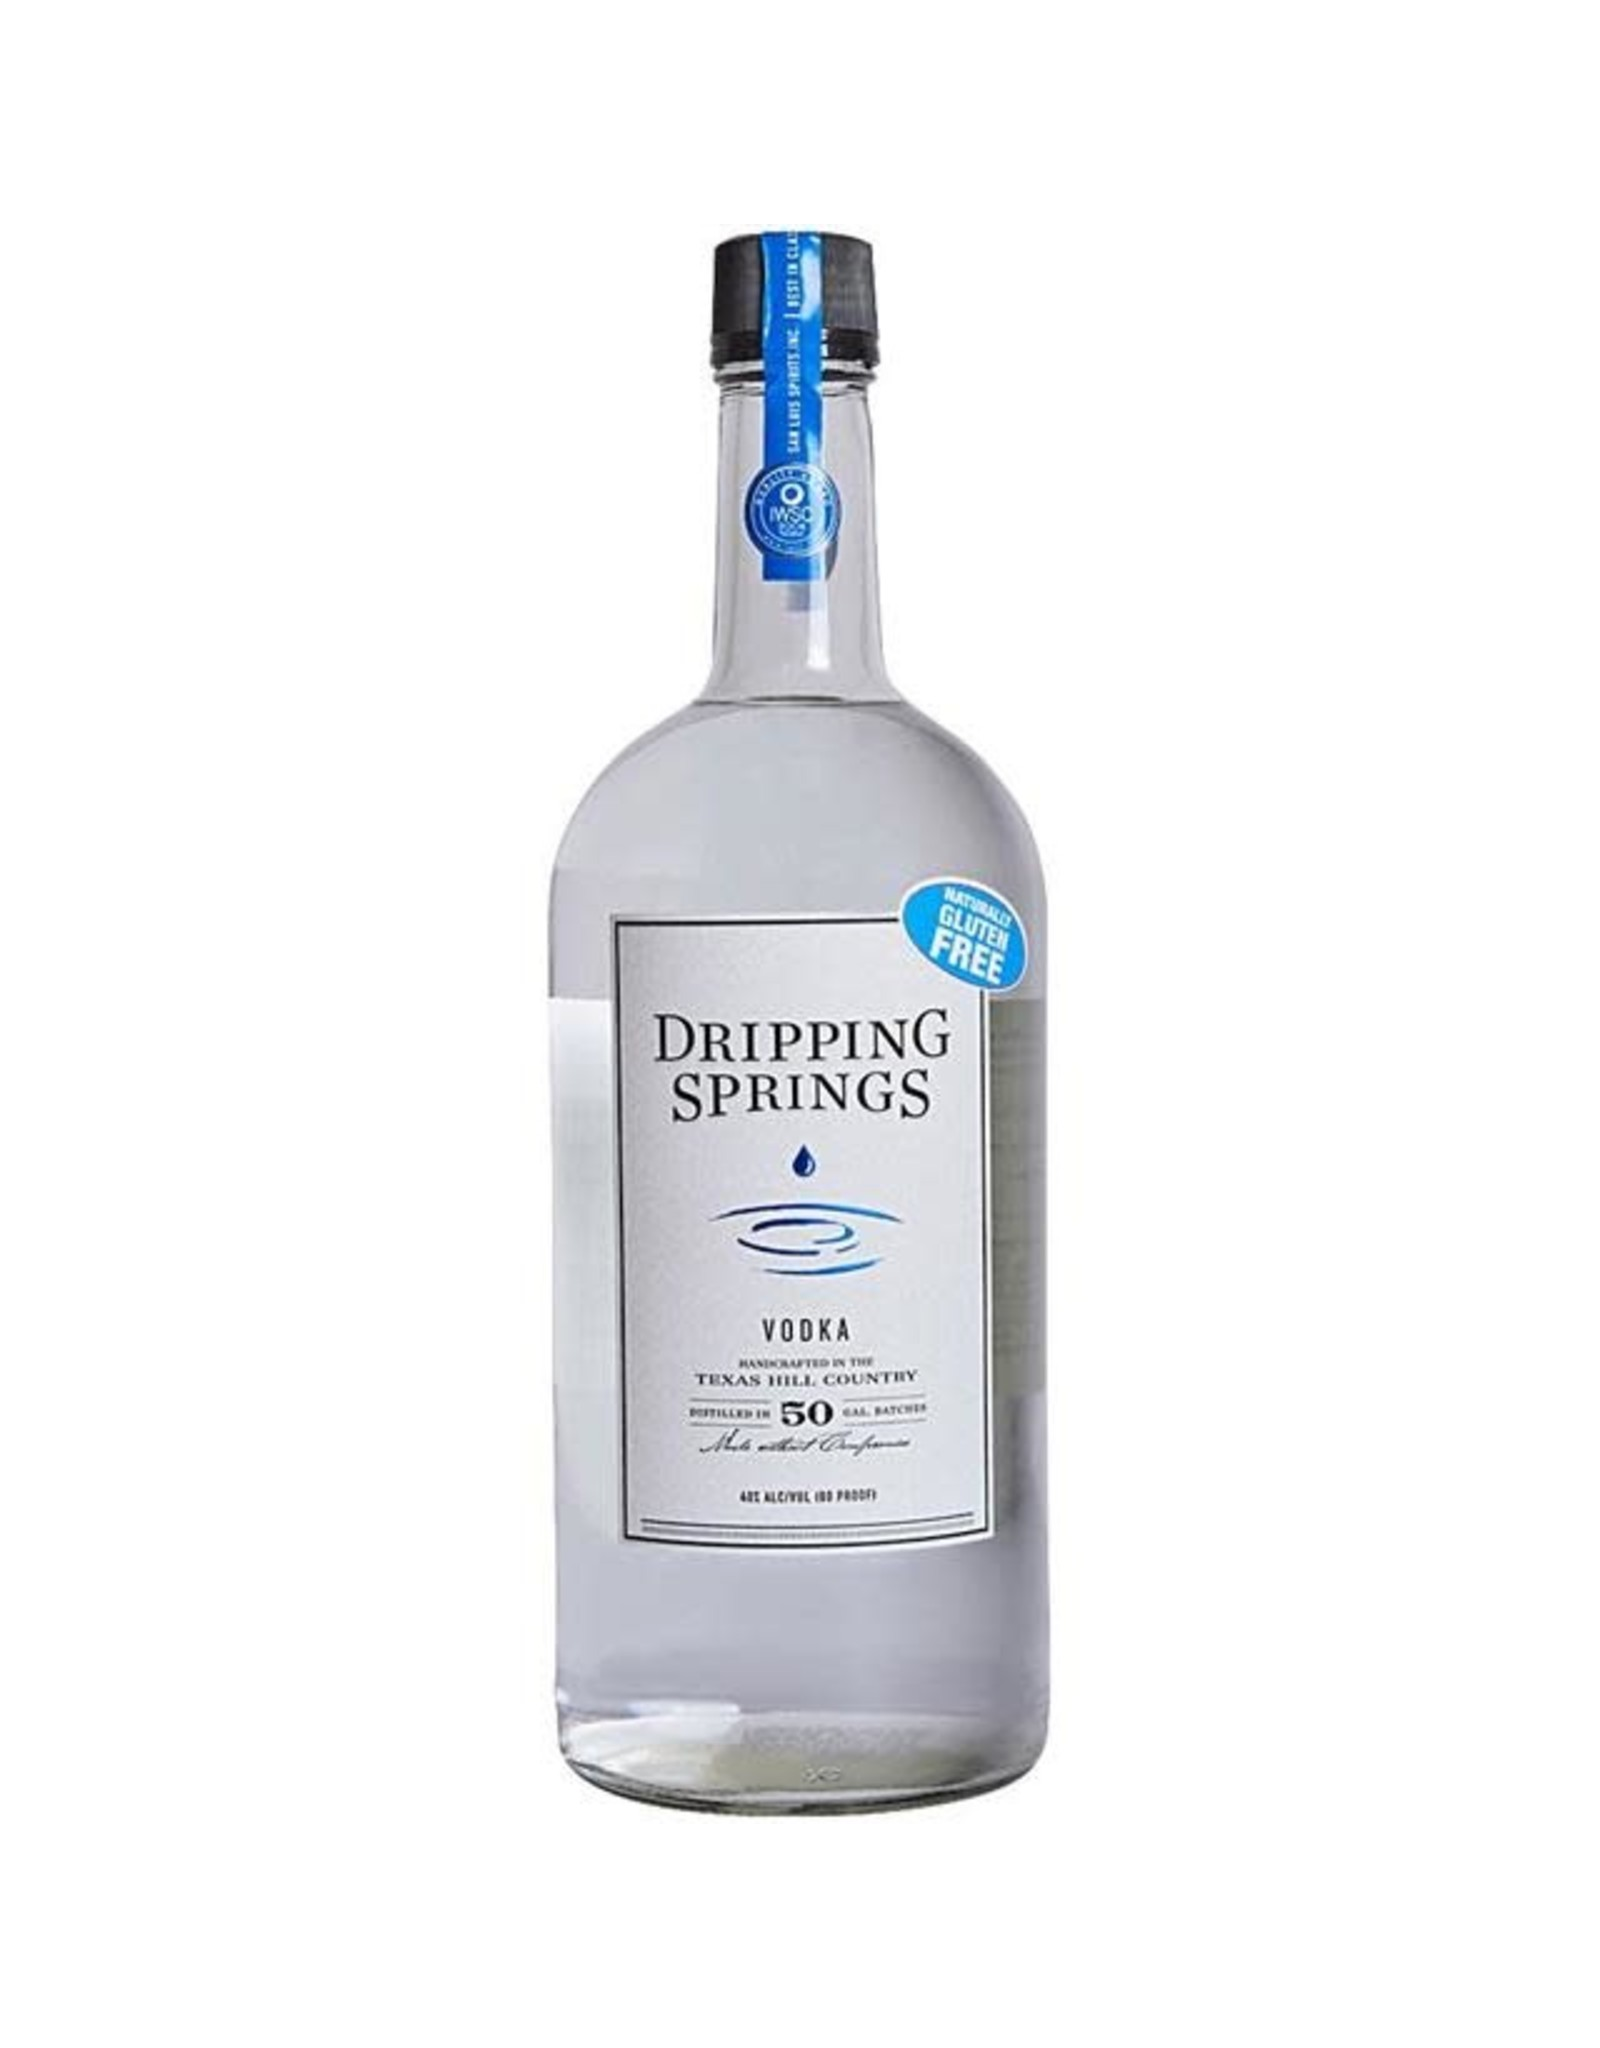 DRIPPING SPRINGS VODKA 1.75L